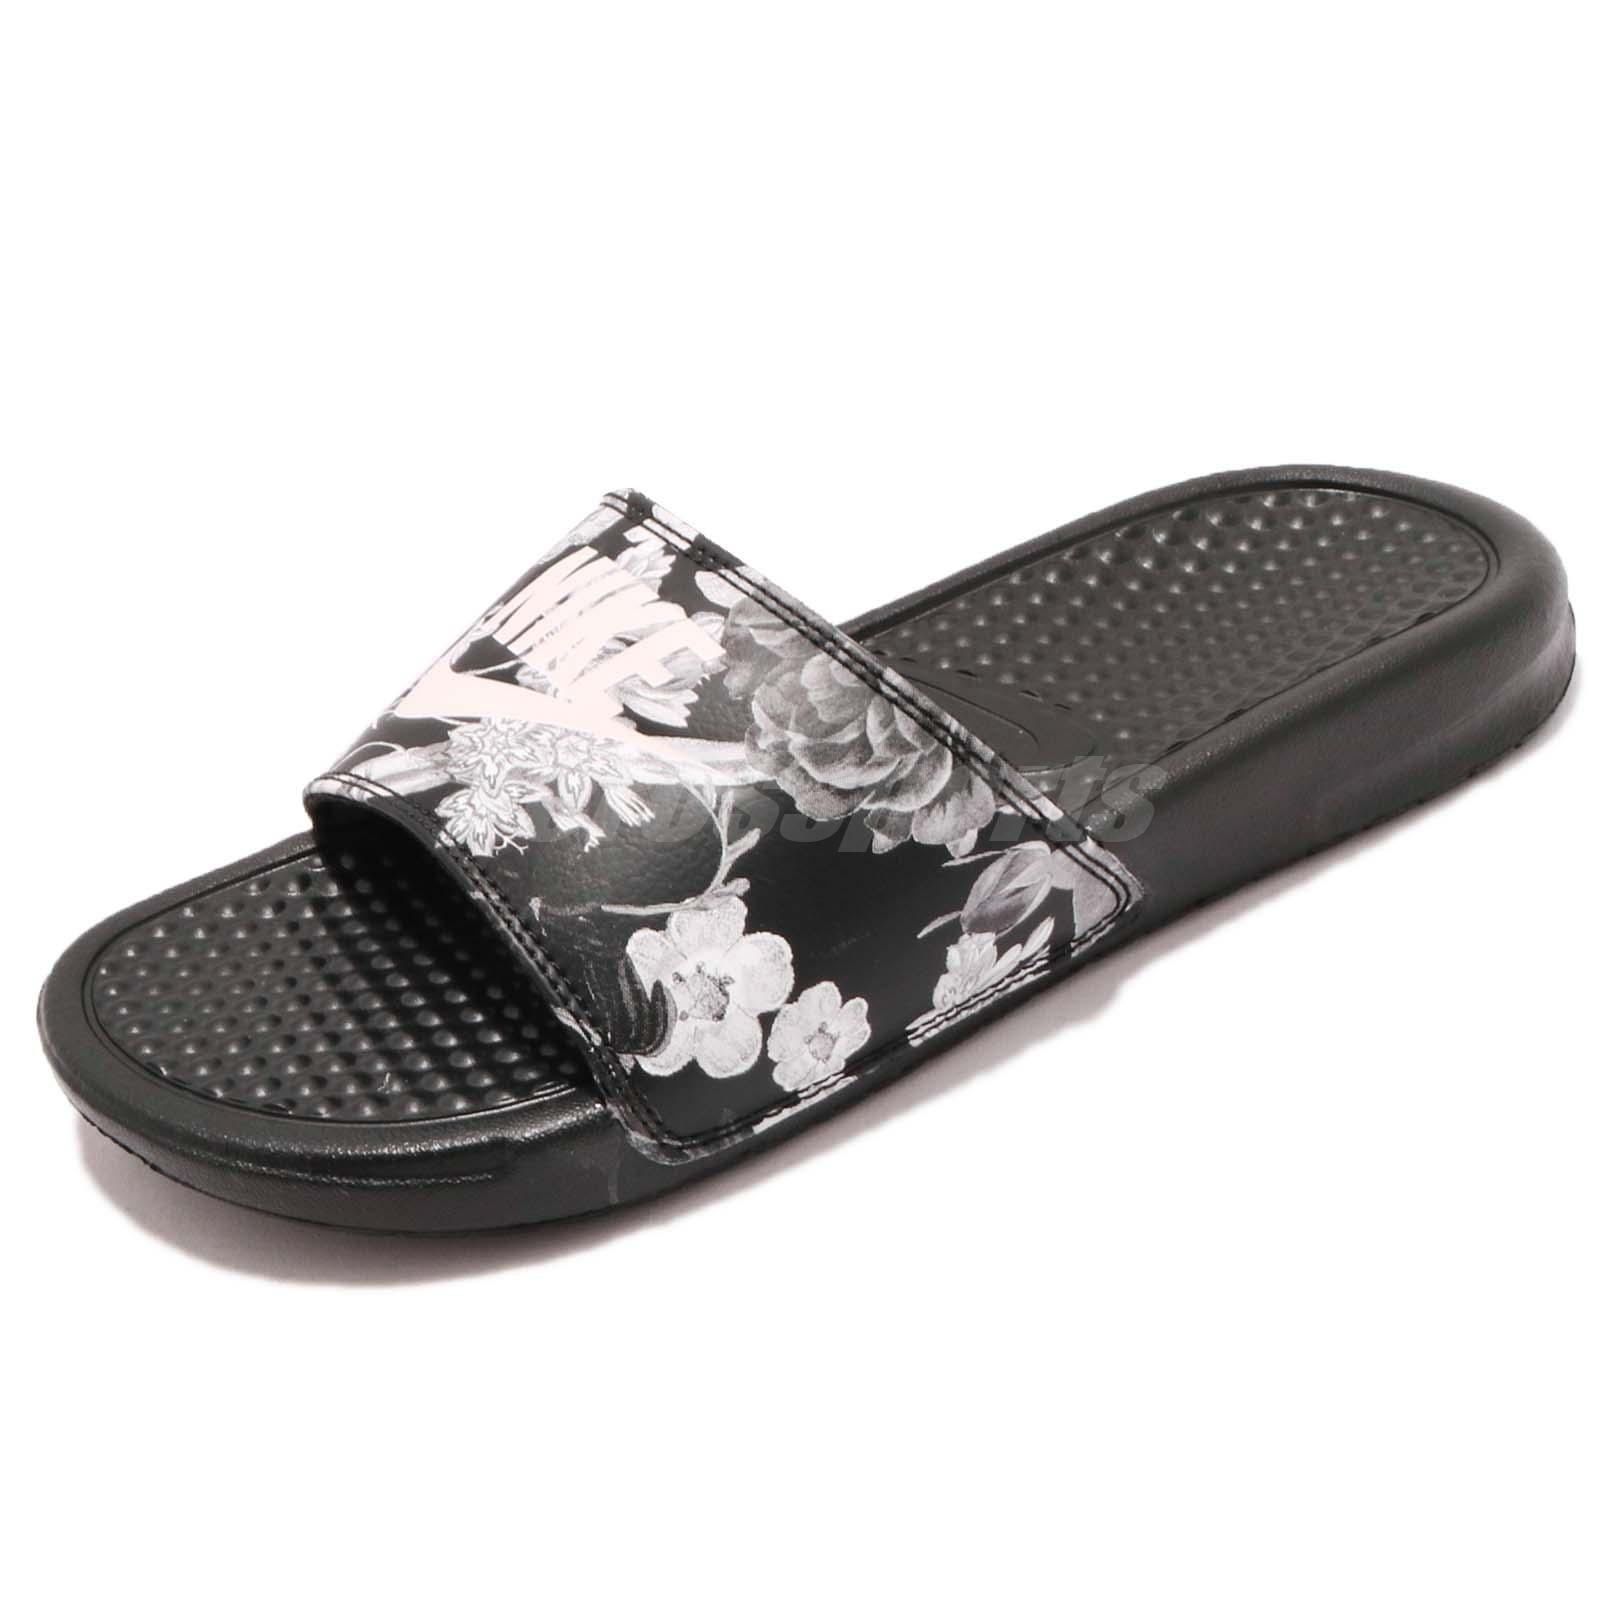 3302245b6 Nike Wmns Benassi JDI Print Floral Black White Women Sports Sandals  618919-020